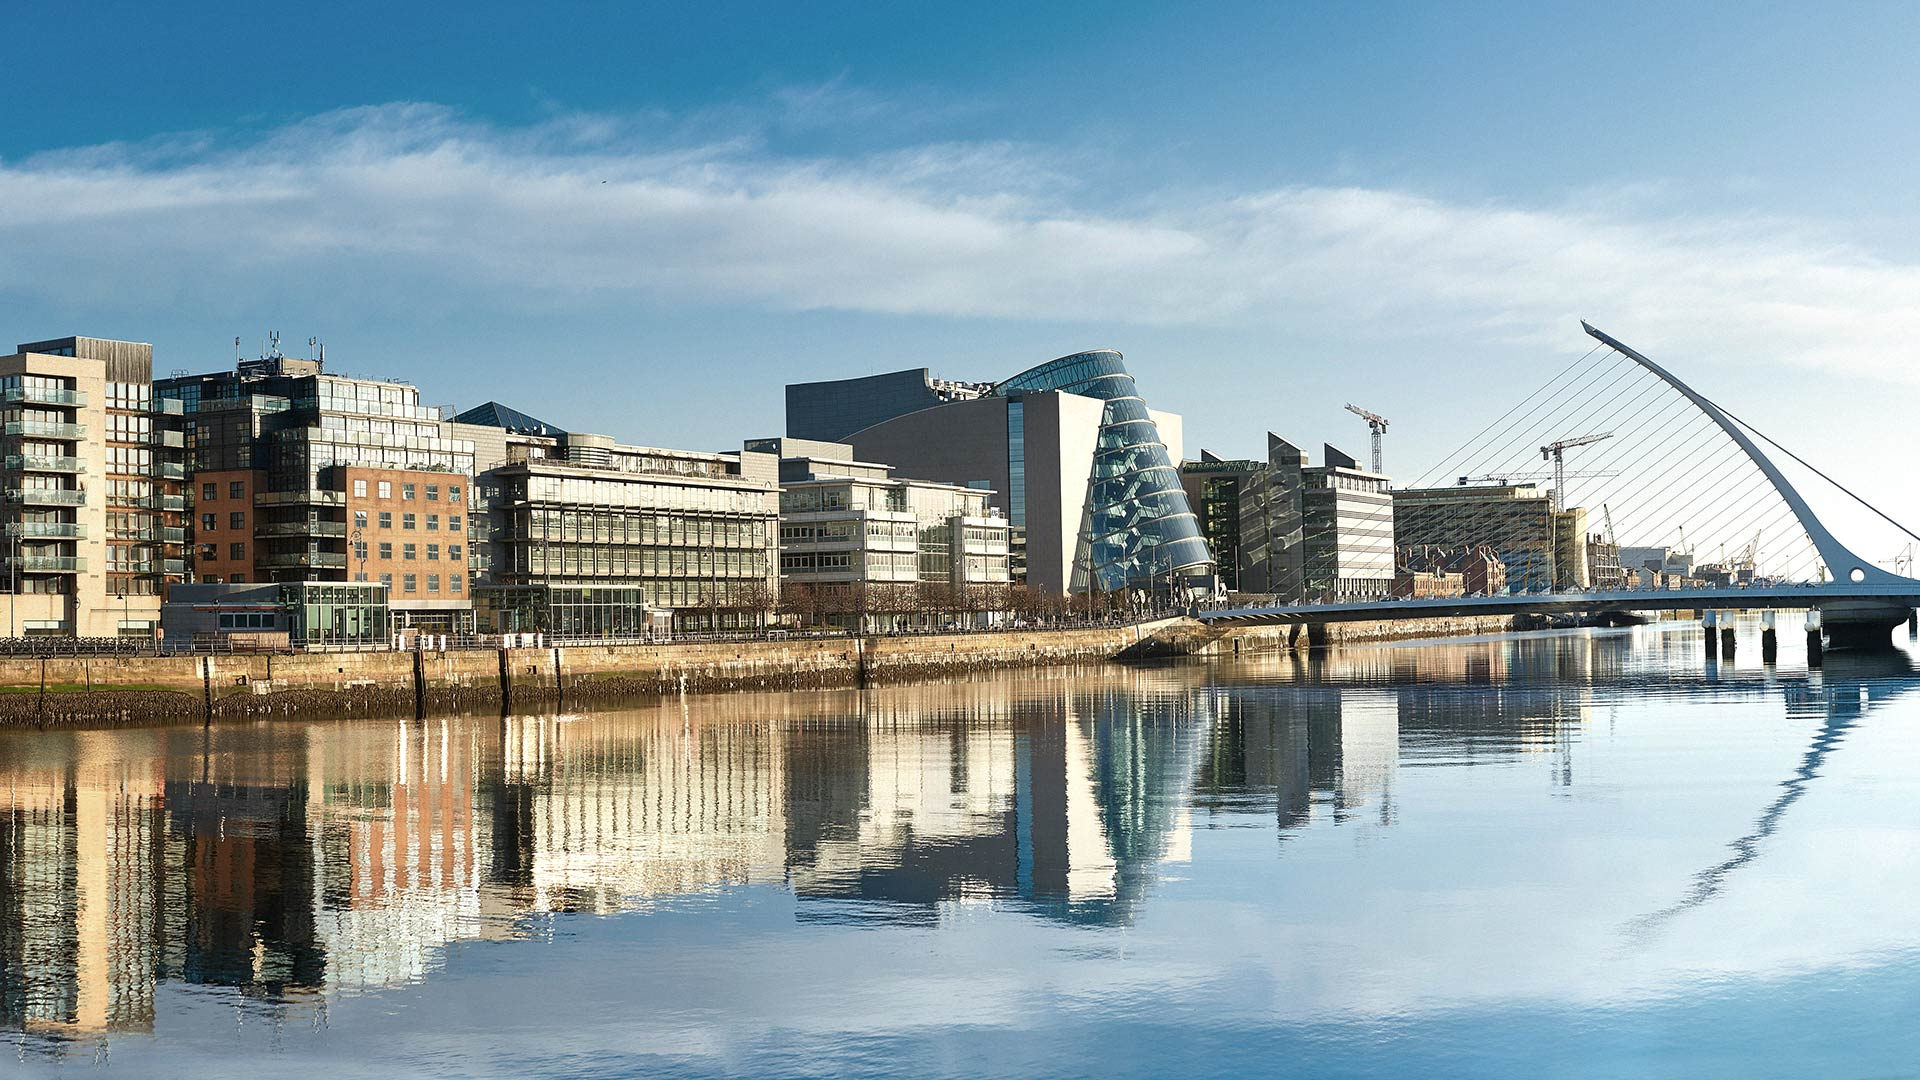 View of Dublin's Docklands and River Liffey